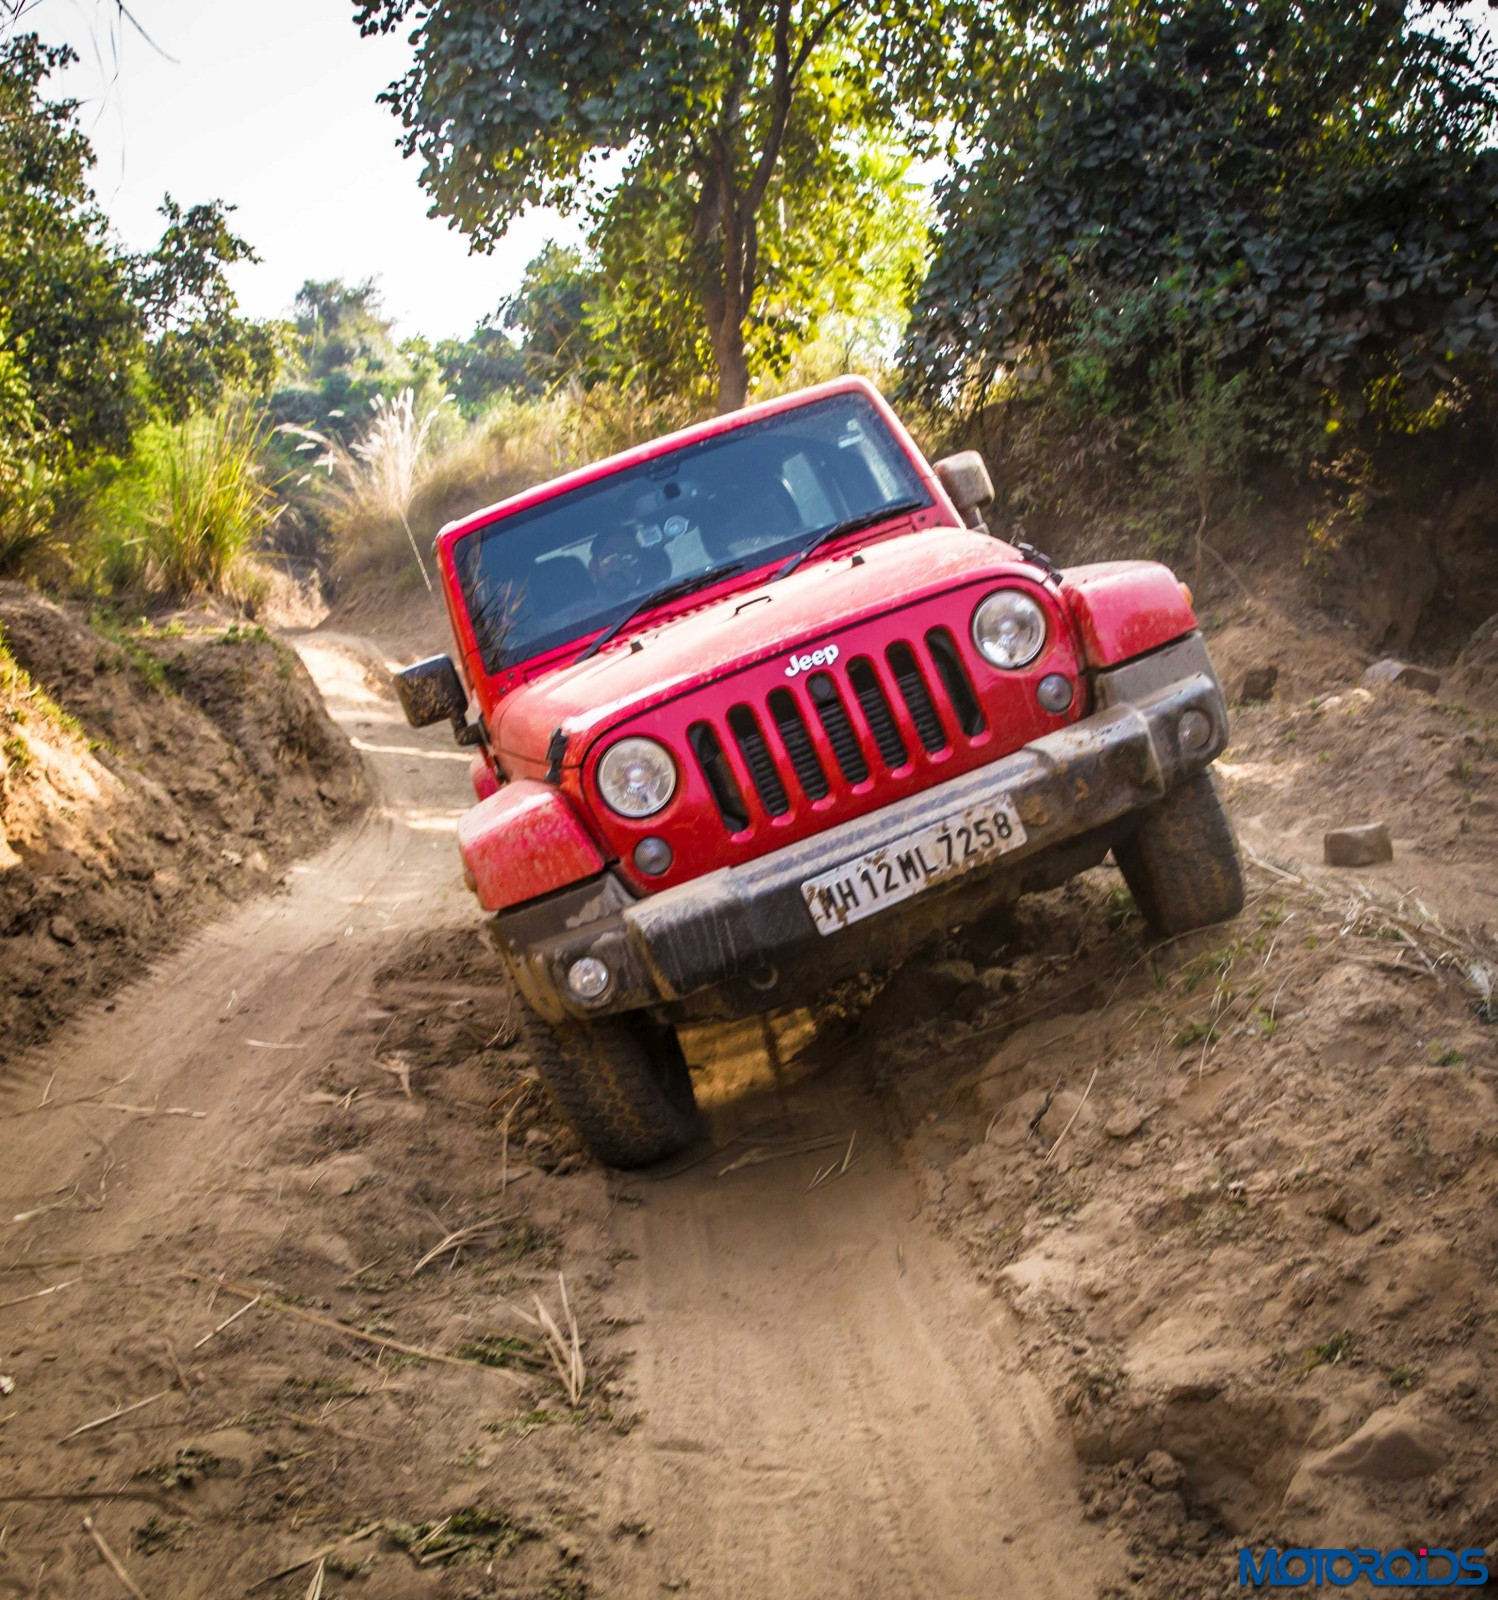 Jeep-Wrangler-Unlimited-on-Camp-Jeep-Off-Road-Trail-2